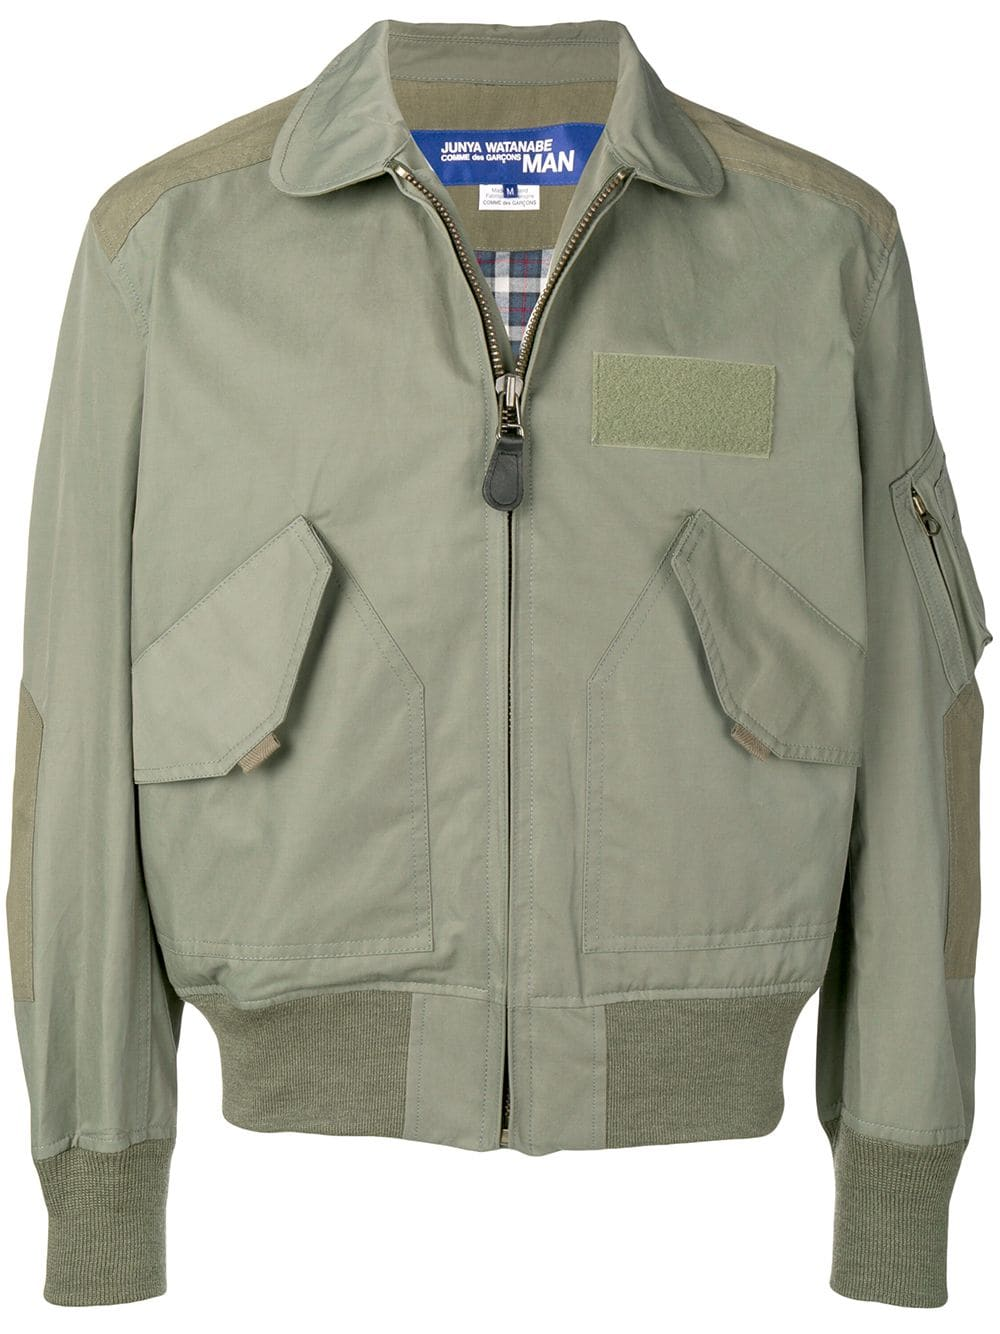 7b92b028c Junya Watanabe zipped bomber jacket - Green | Products in 2019 ...